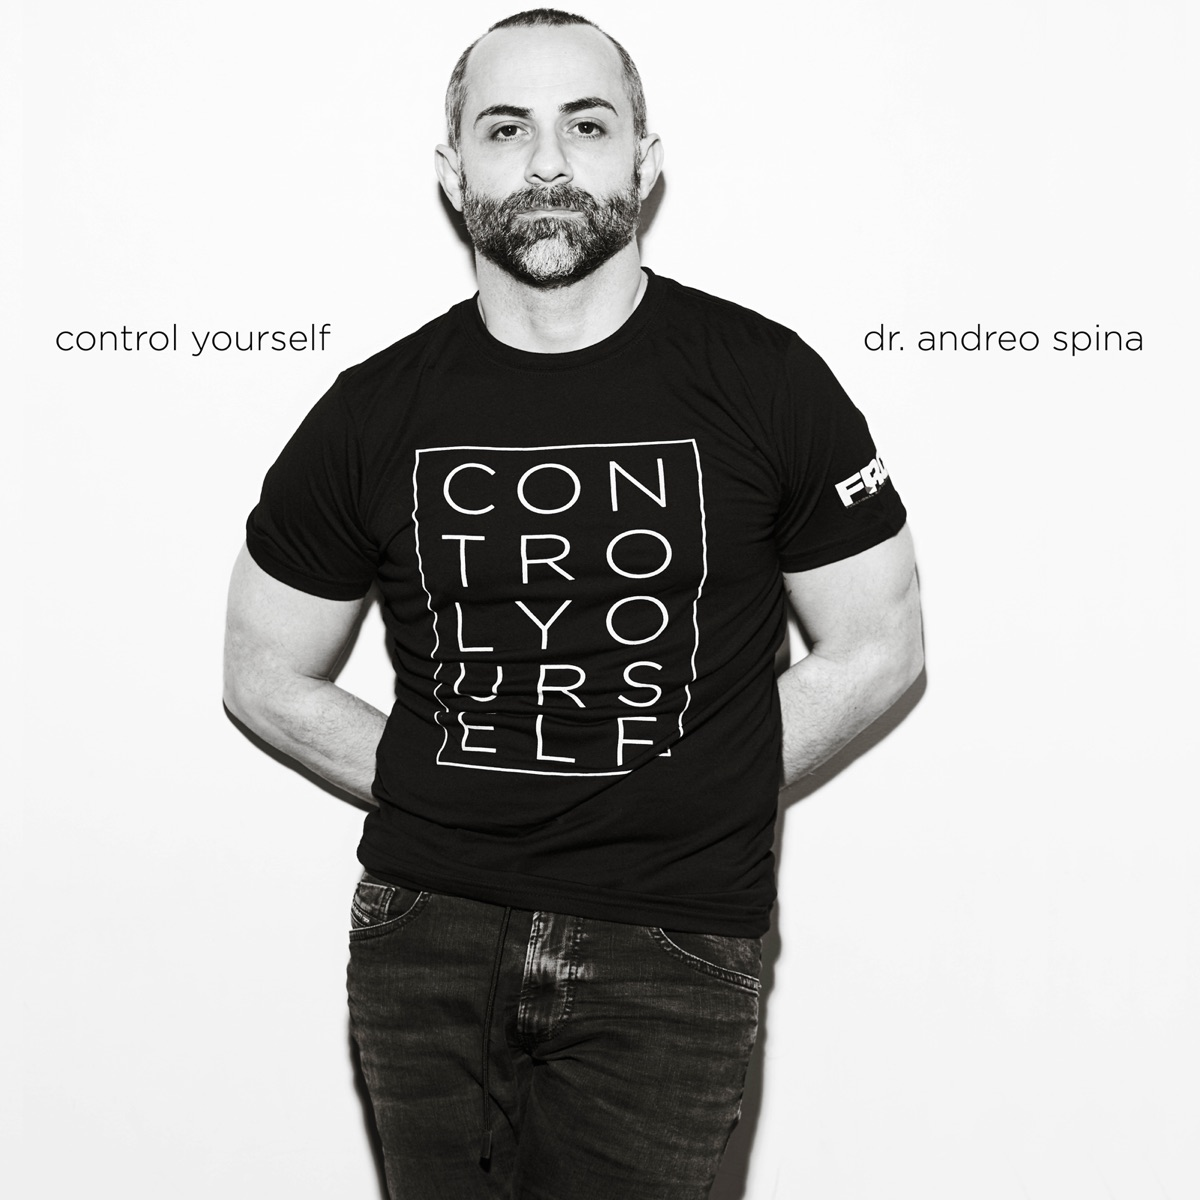 control yourself with dr andreo spina